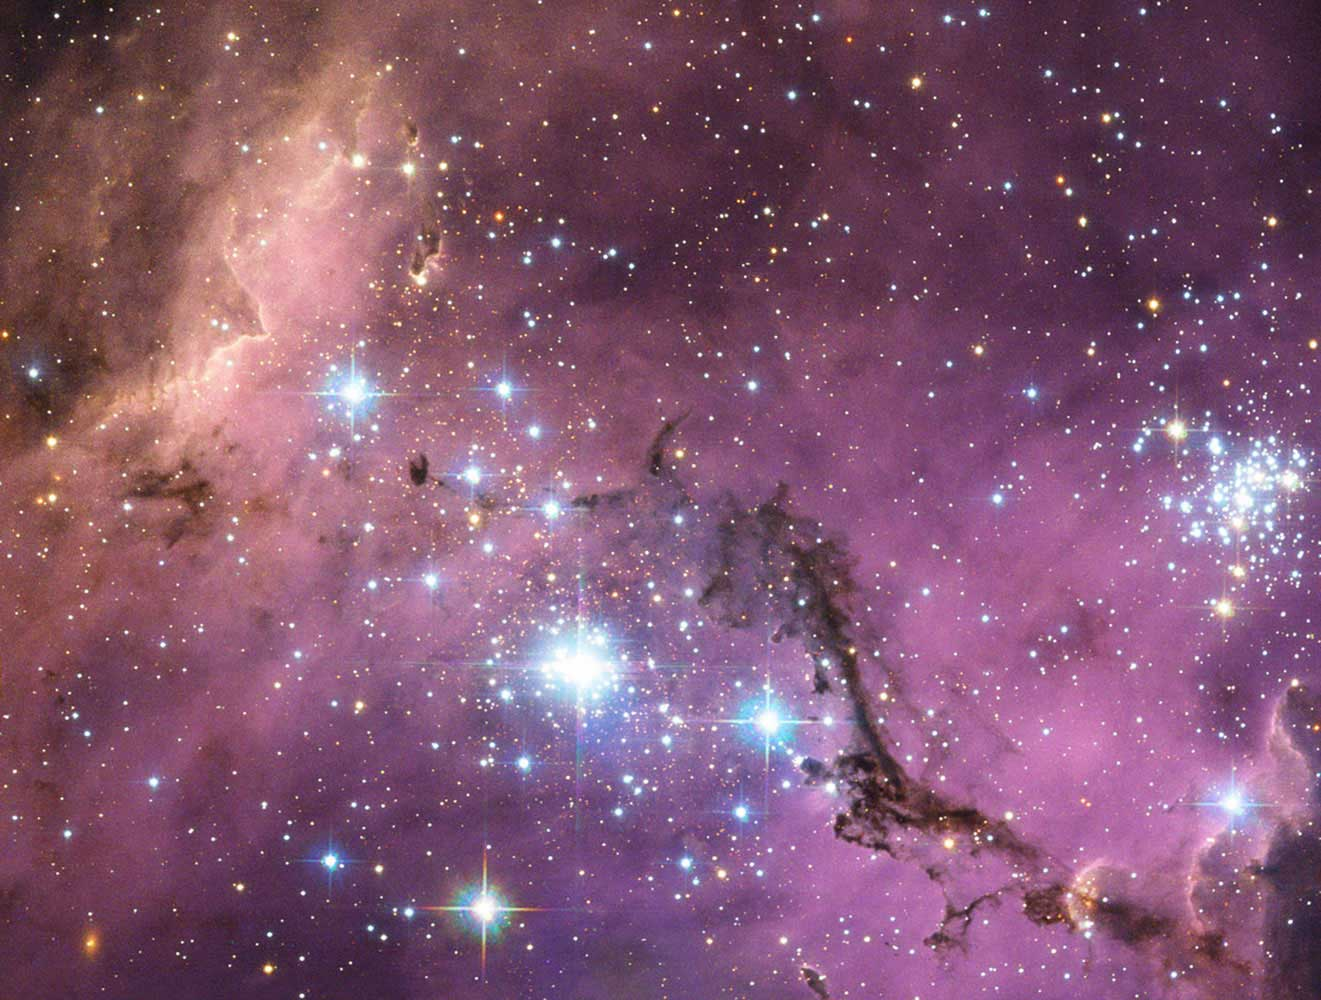 Nearly 200, 000 light-years from Earth, lies the Large Magellanic Cloud, a satellite galaxy of the Milky Way. As the Milky Way's gravity gently tugs on its neighbor's clumps of diffuse dust and gas, they collapse to form new stars. In turn, these light up the ambient gas in a kaleidoscope of colors.